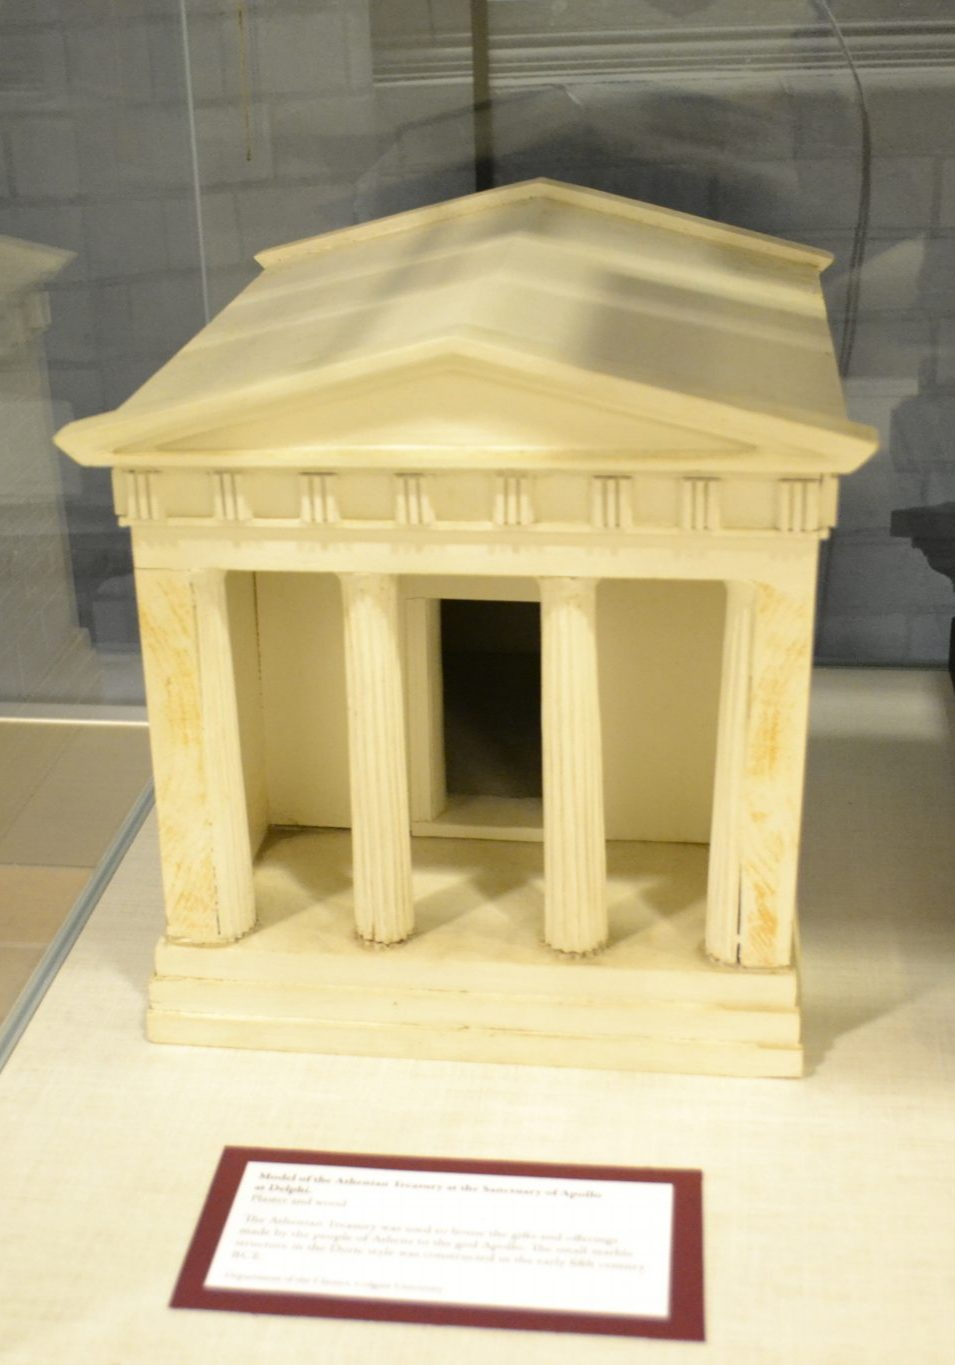 <p>Athenian Treasury at Delphi.</p><p>Student Project of the 1960s.</p><p>Department of the Classics,</p><p>Colgate University.</p><p>Photo by Erica Hiddink '17.</p>